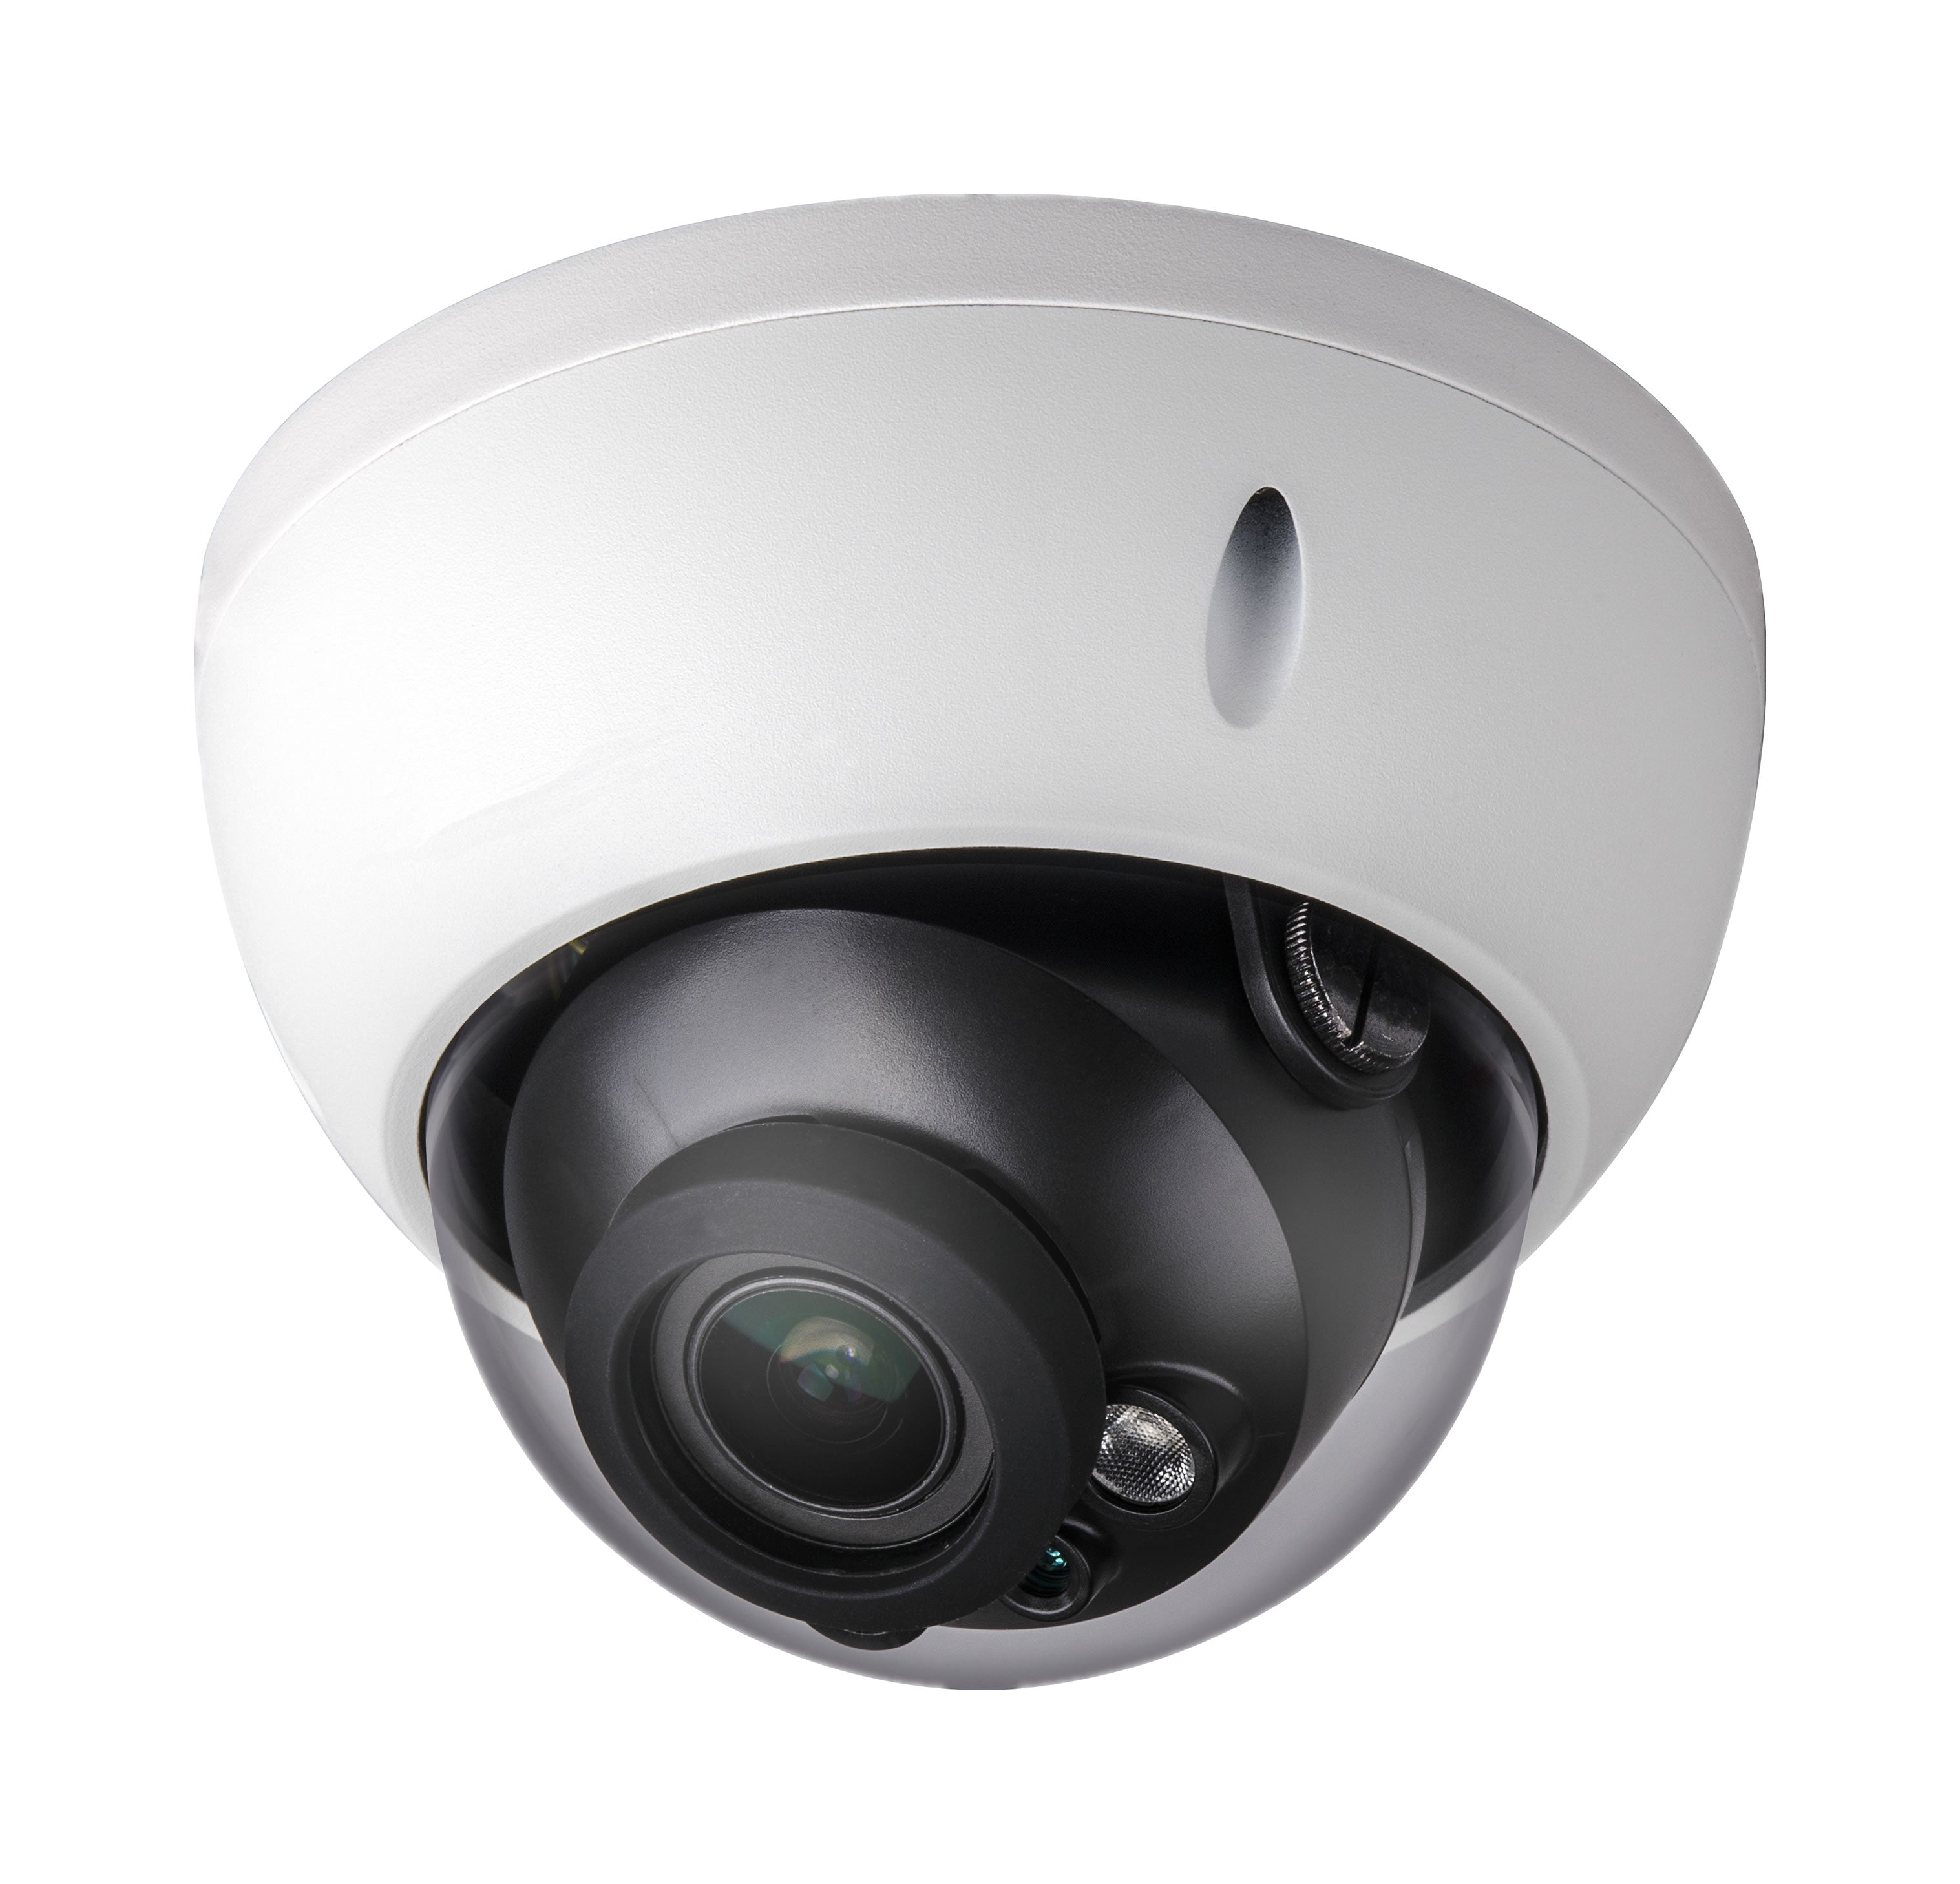 23-4DB24A31R-Z 4MP Vari-Focal WDR IR Dome Network Camera